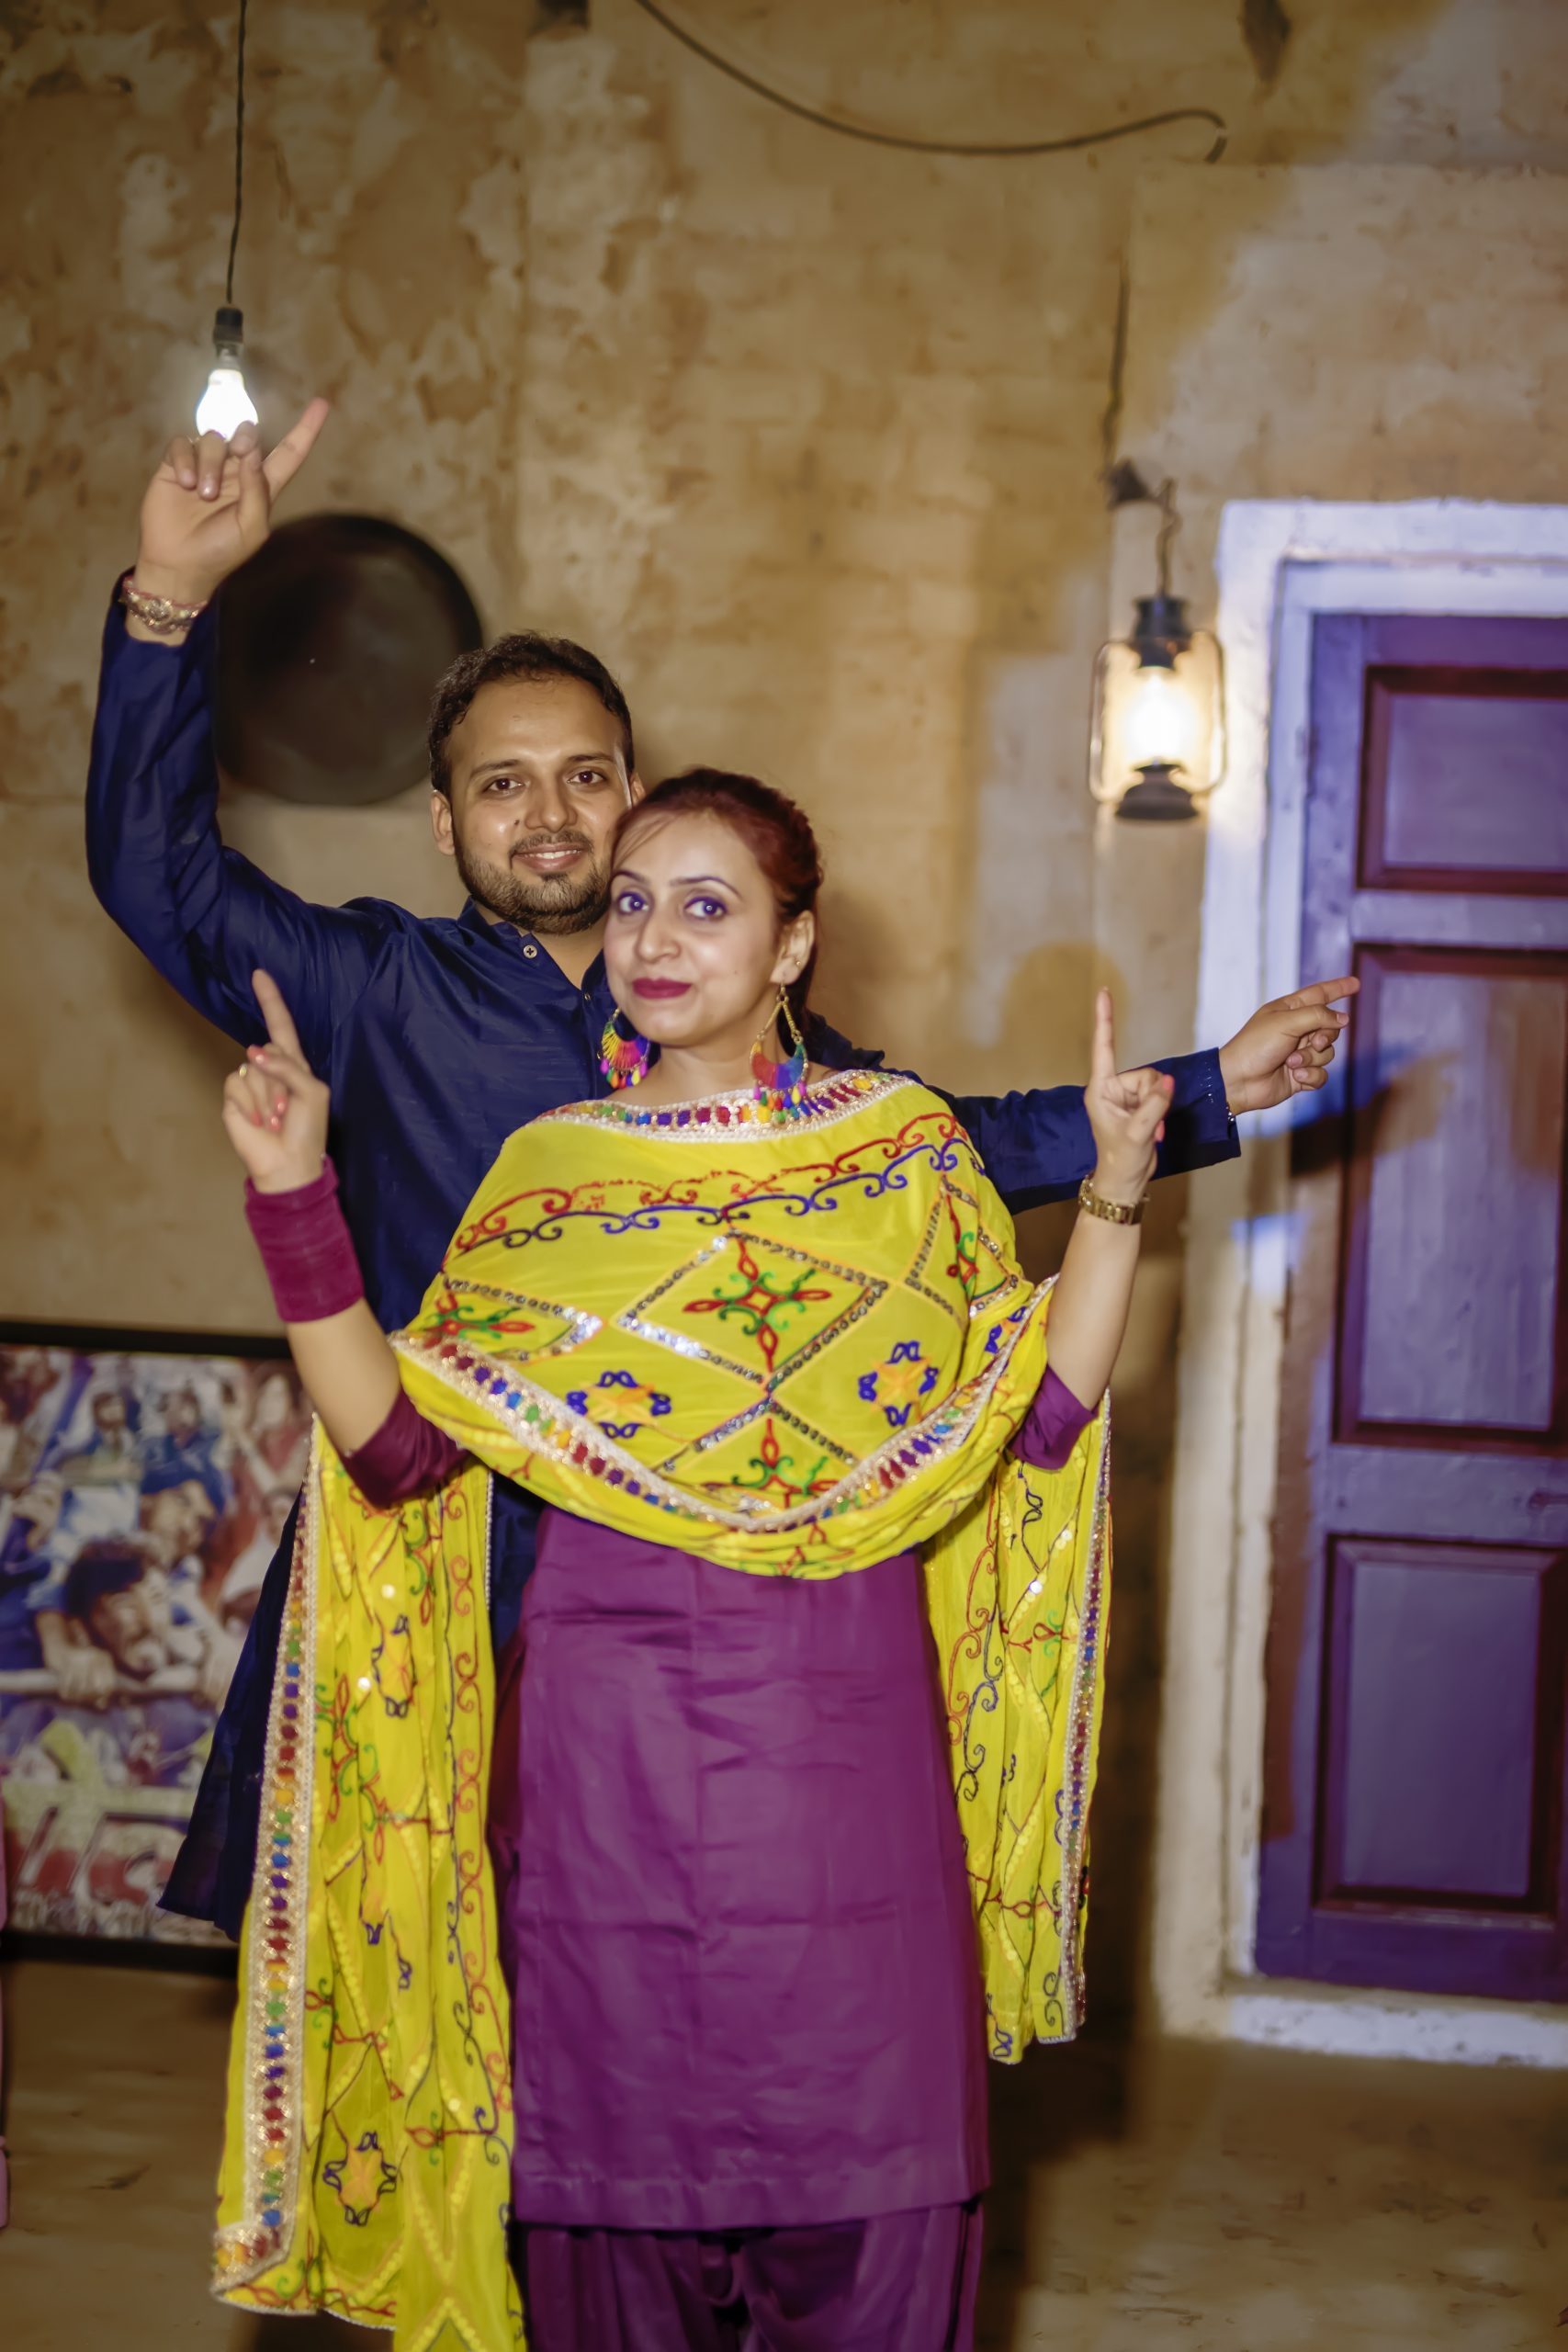 A Punjabi couple dancing